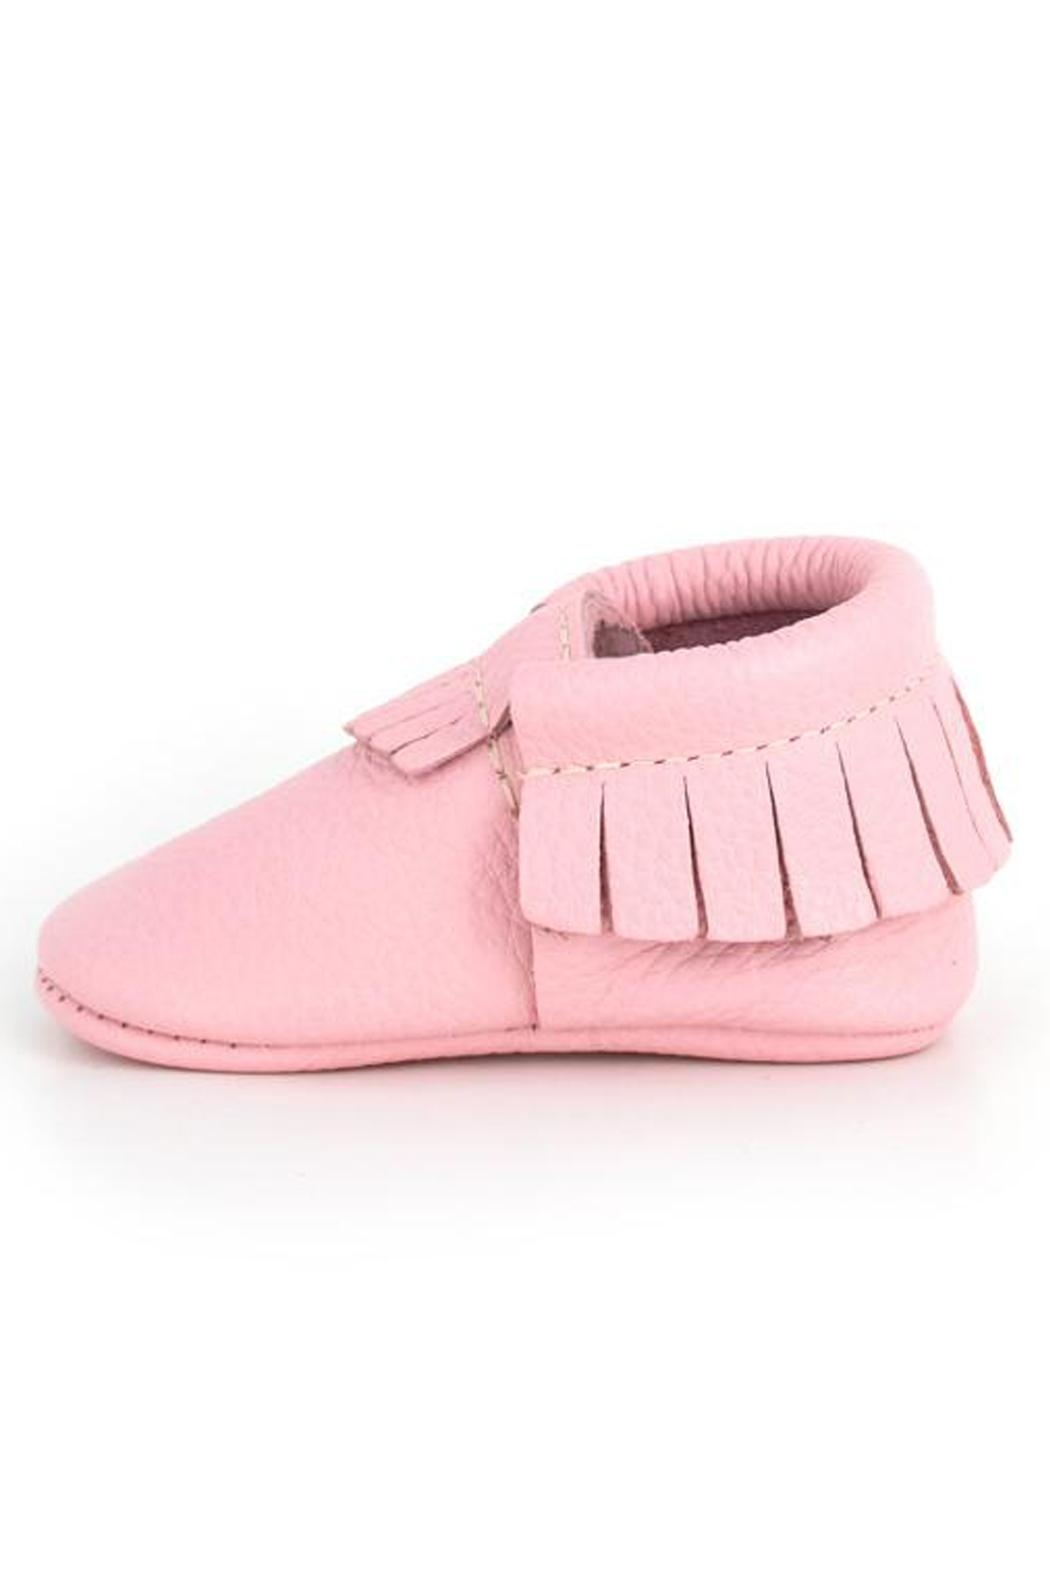 Freshly Picked Cotton Candy Moccasin - Main Image